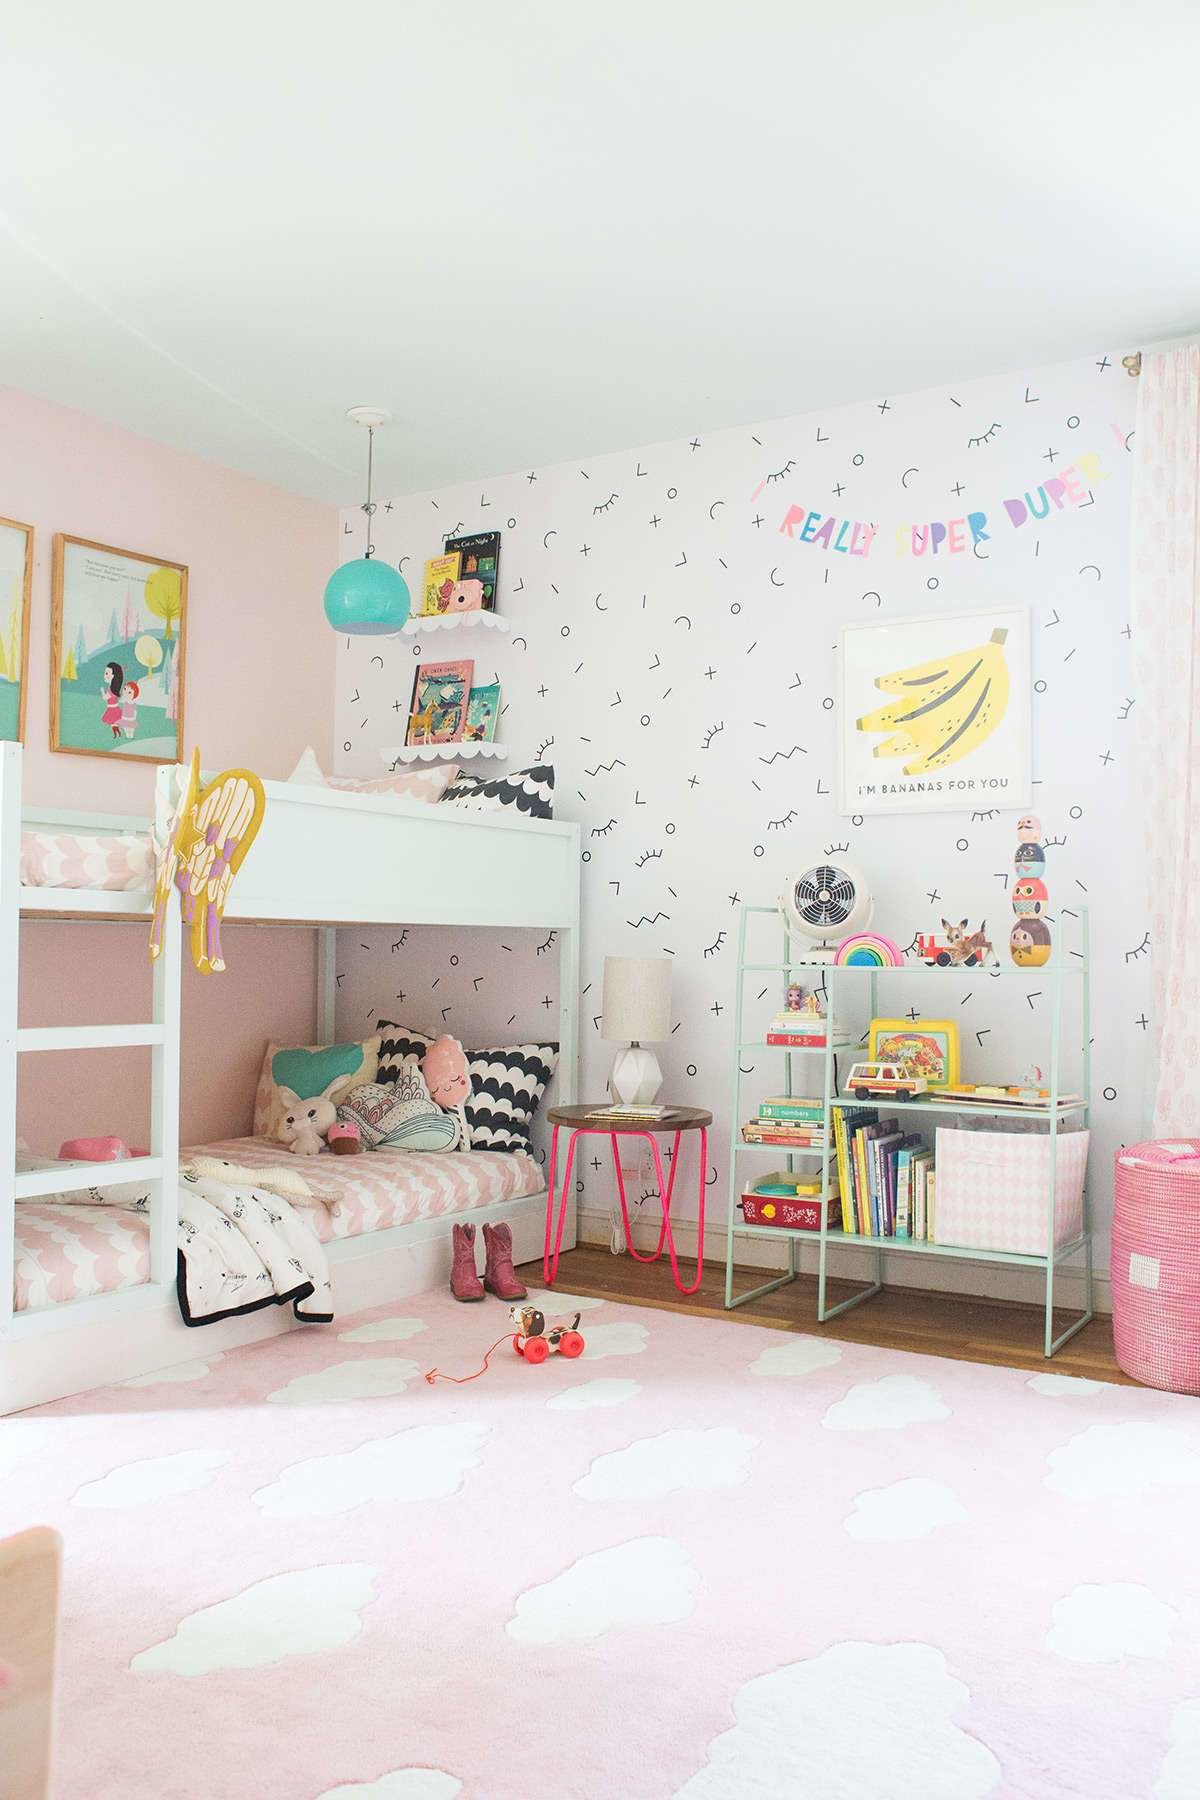 Best A Shared Bedroom With Bunk Beds Lay Baby Lay Lay Baby Lay With Pictures